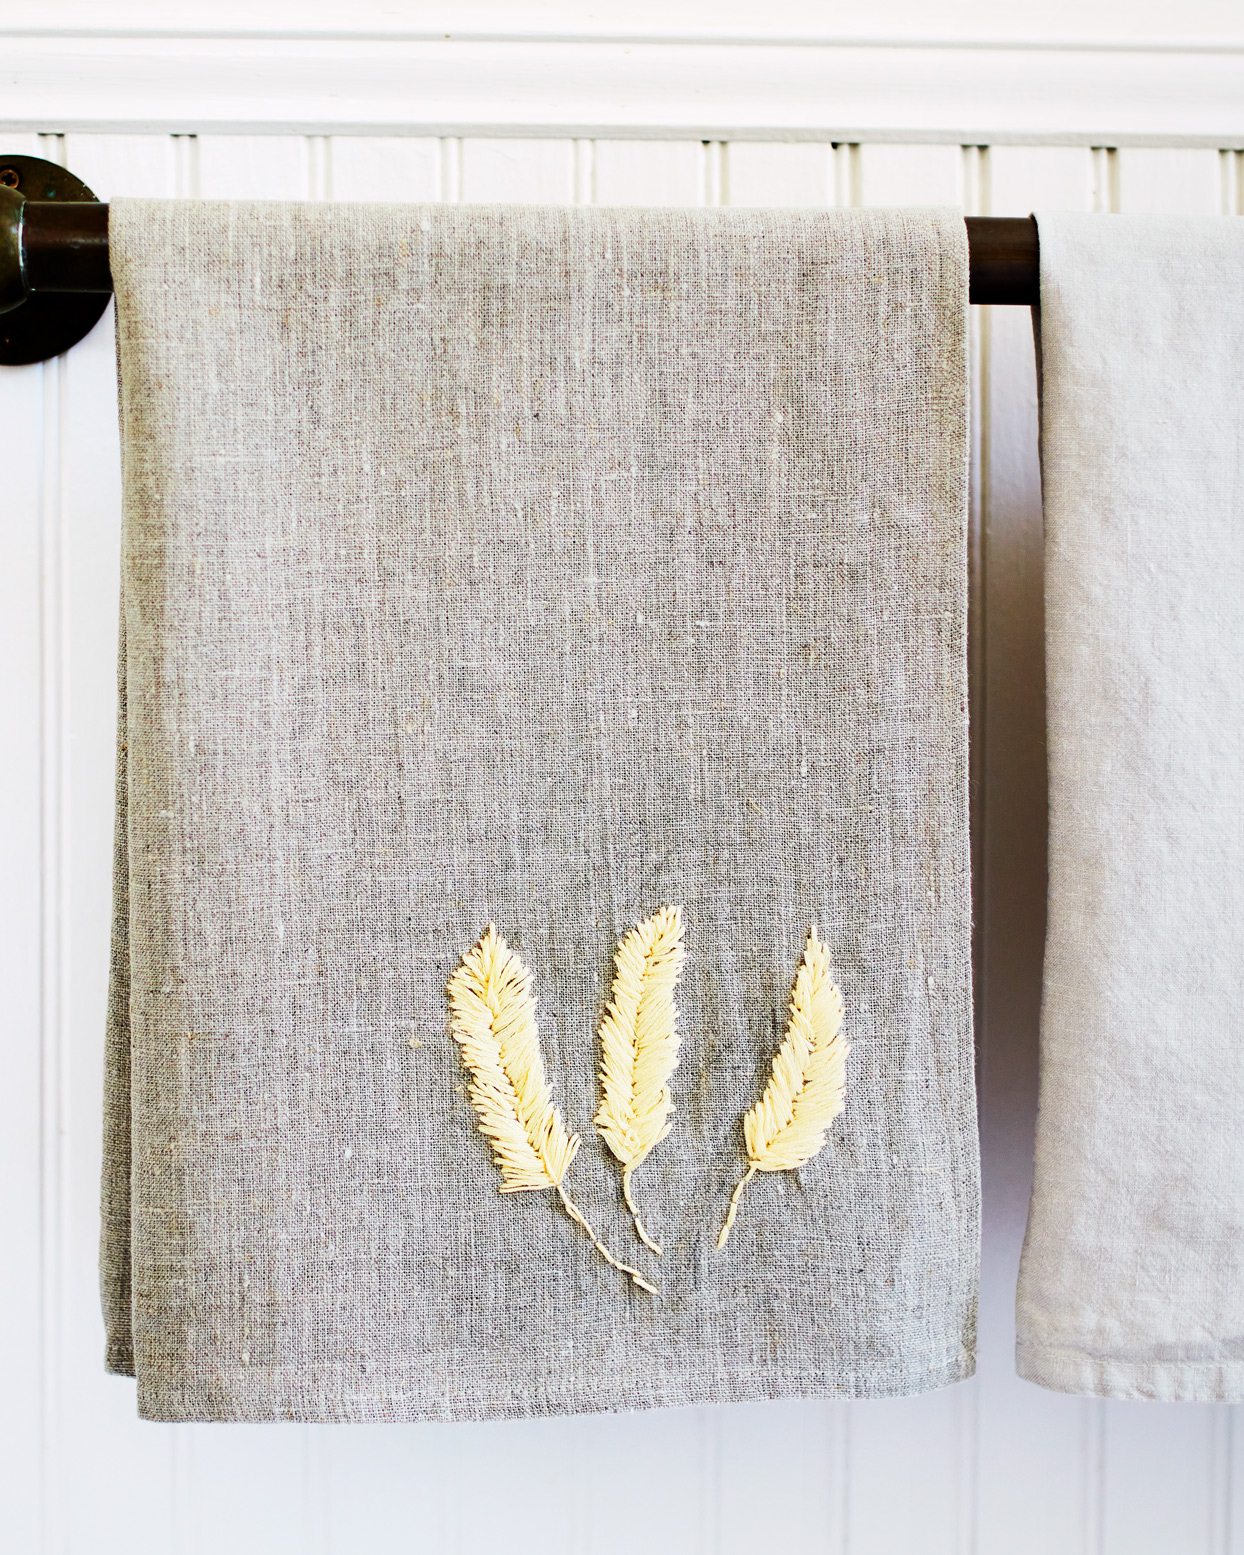 wheat embroidery on towels